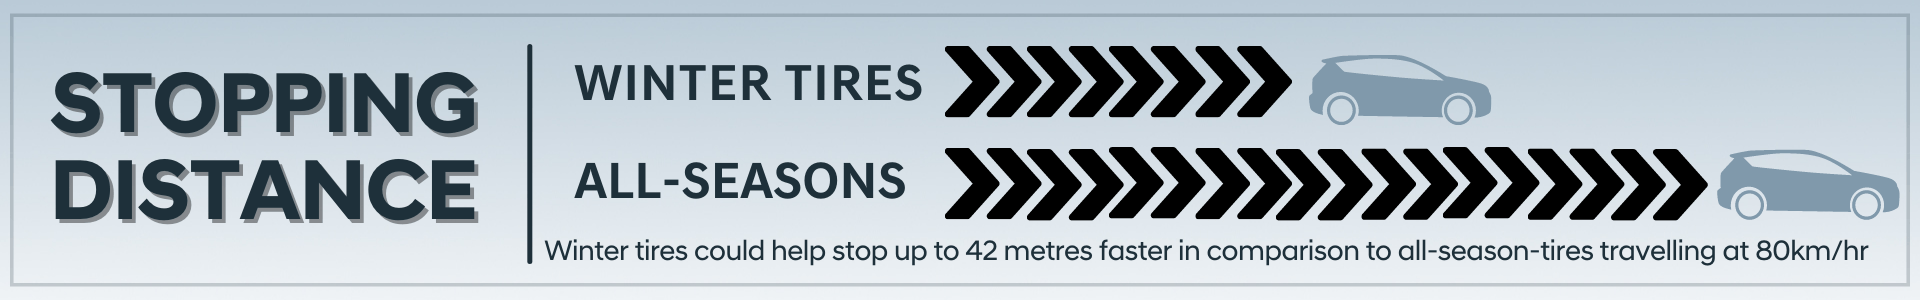 Stopping distance with winter tires Clarington